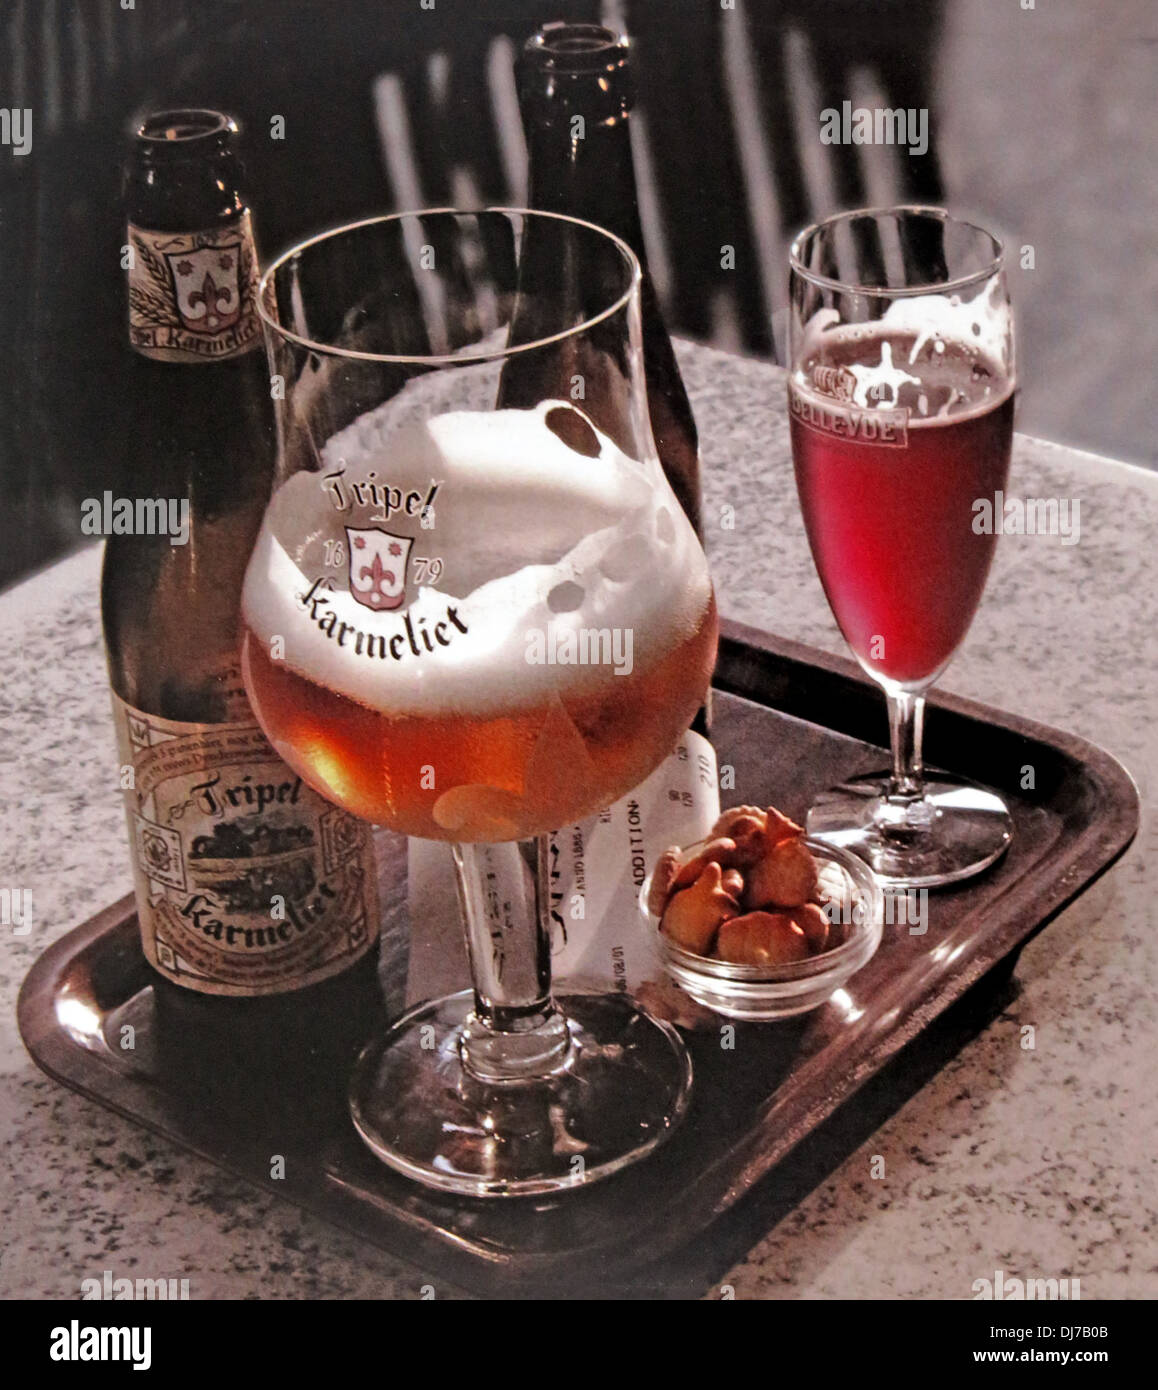 A tray of Belgian beers Karmelite in bottle and Framboise Stock Photo